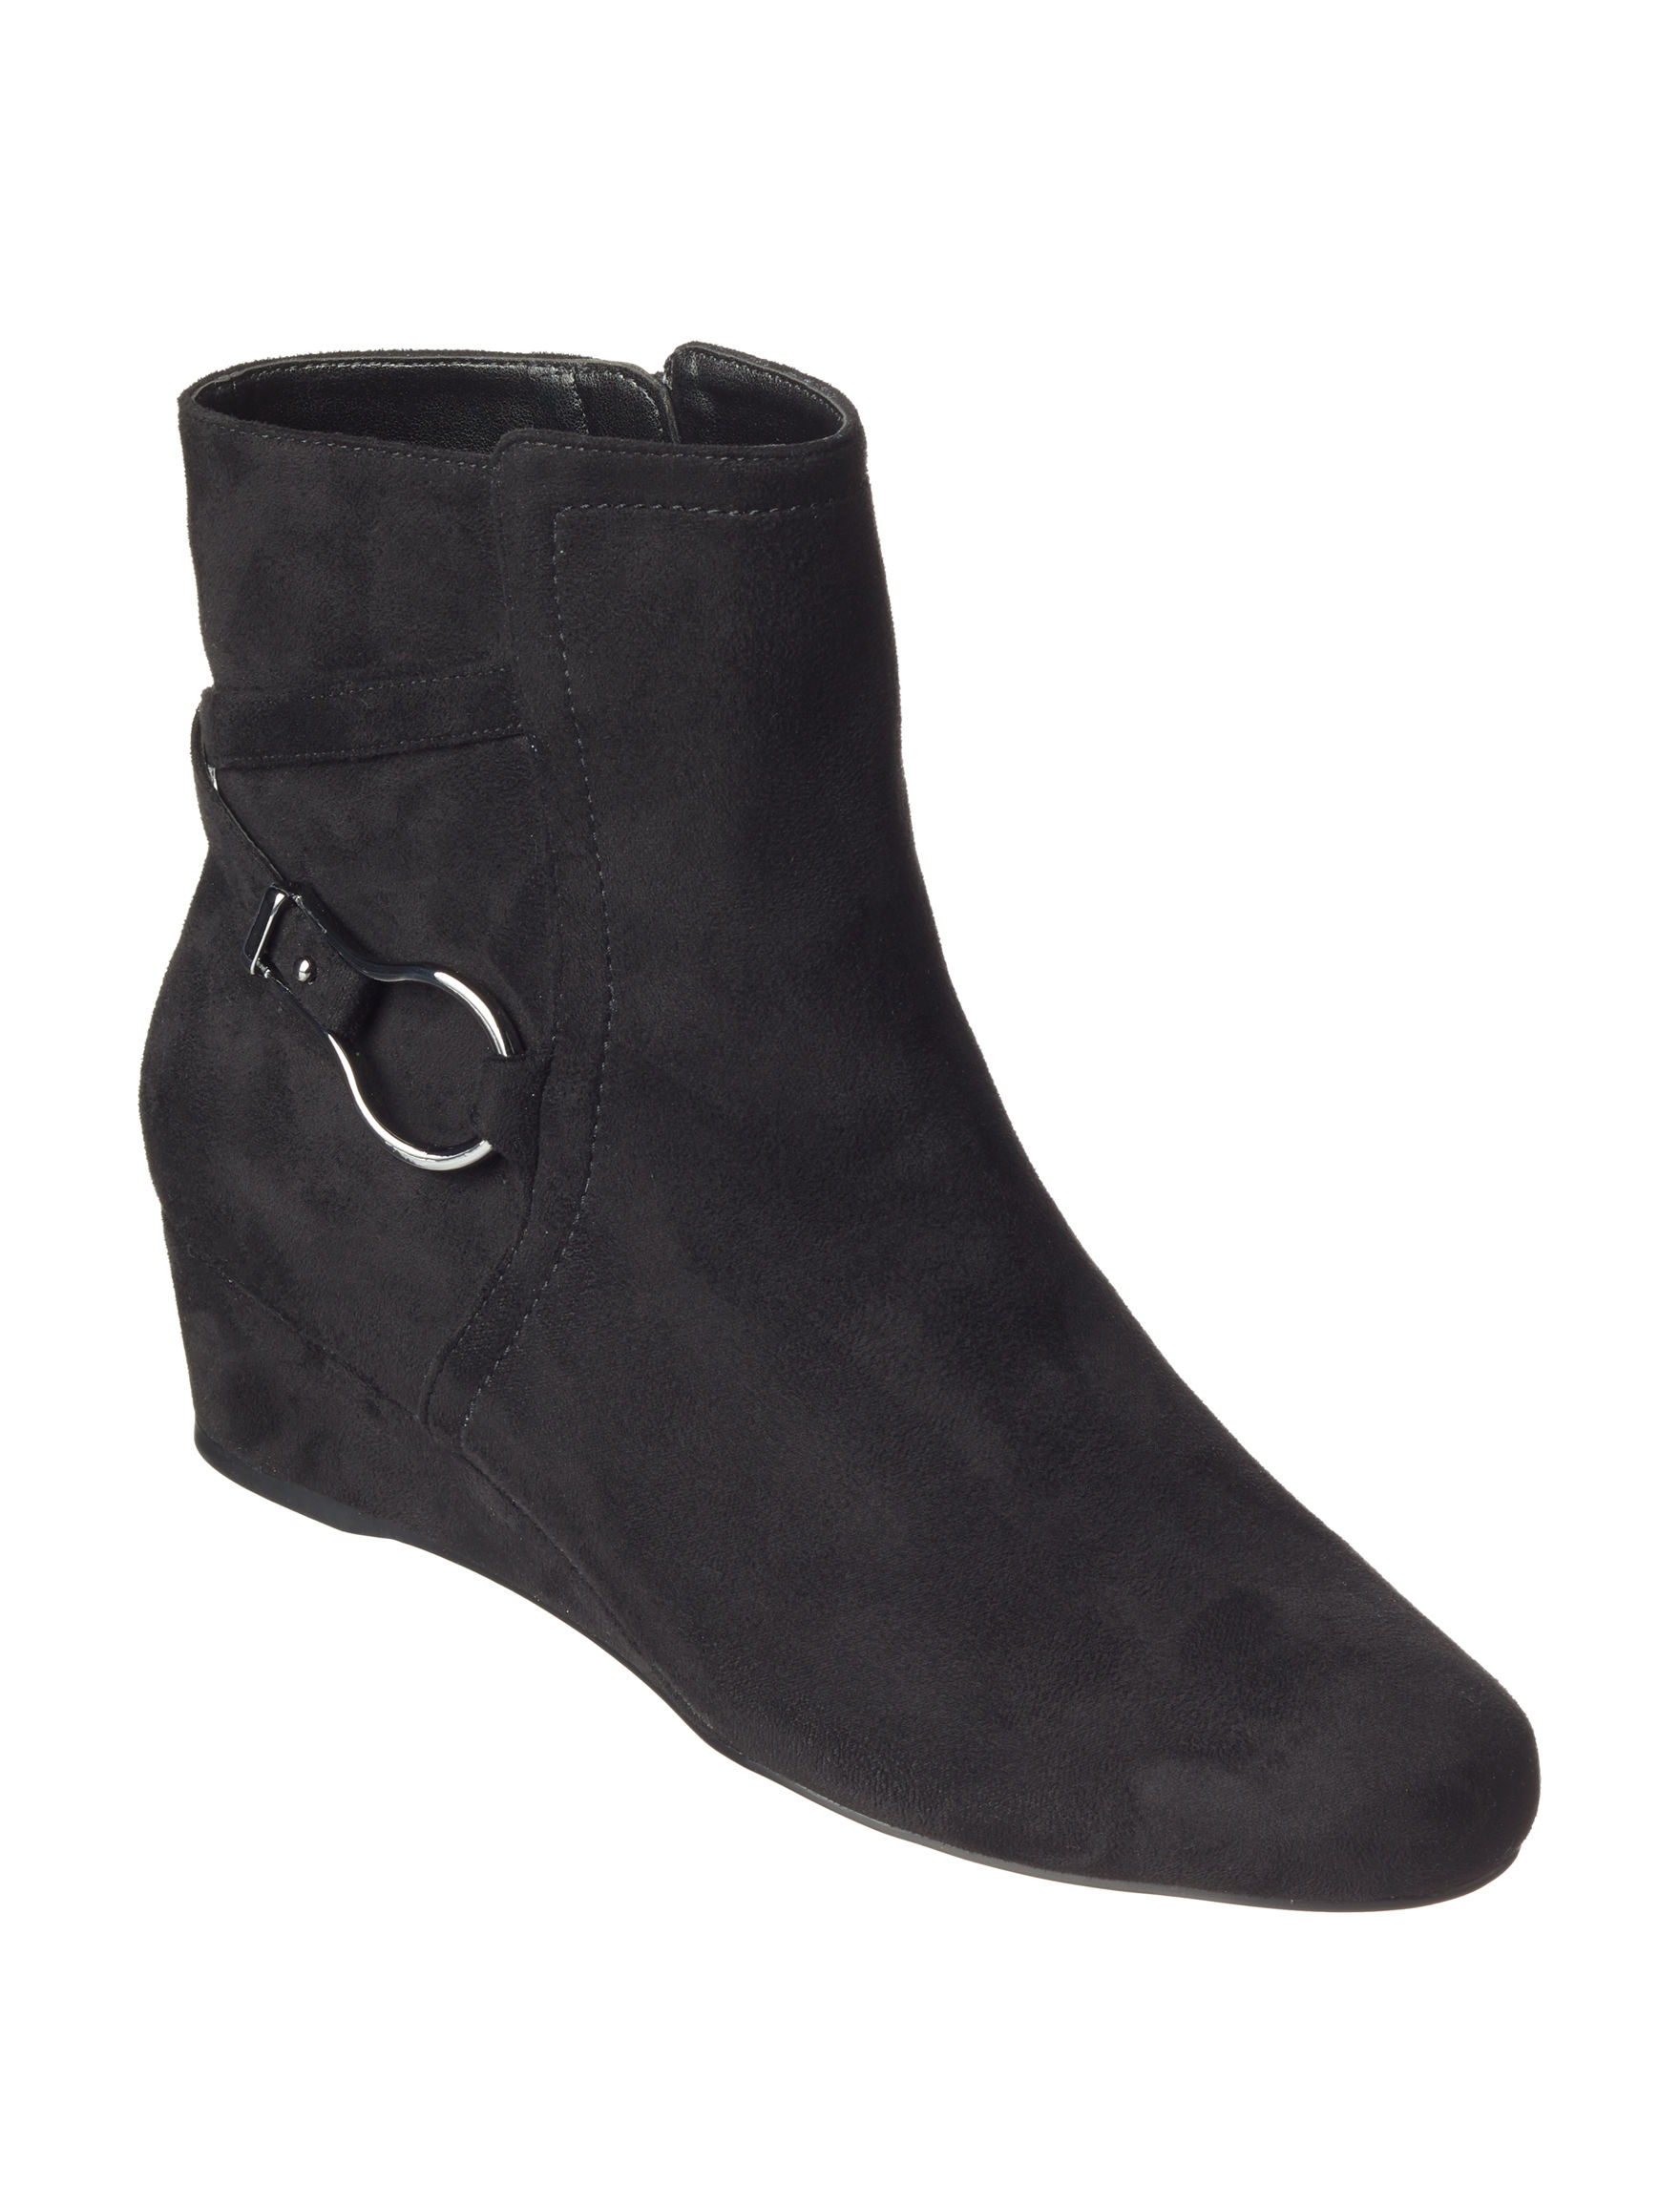 IMPO Black Ankle Boots & Booties Wedge Boots